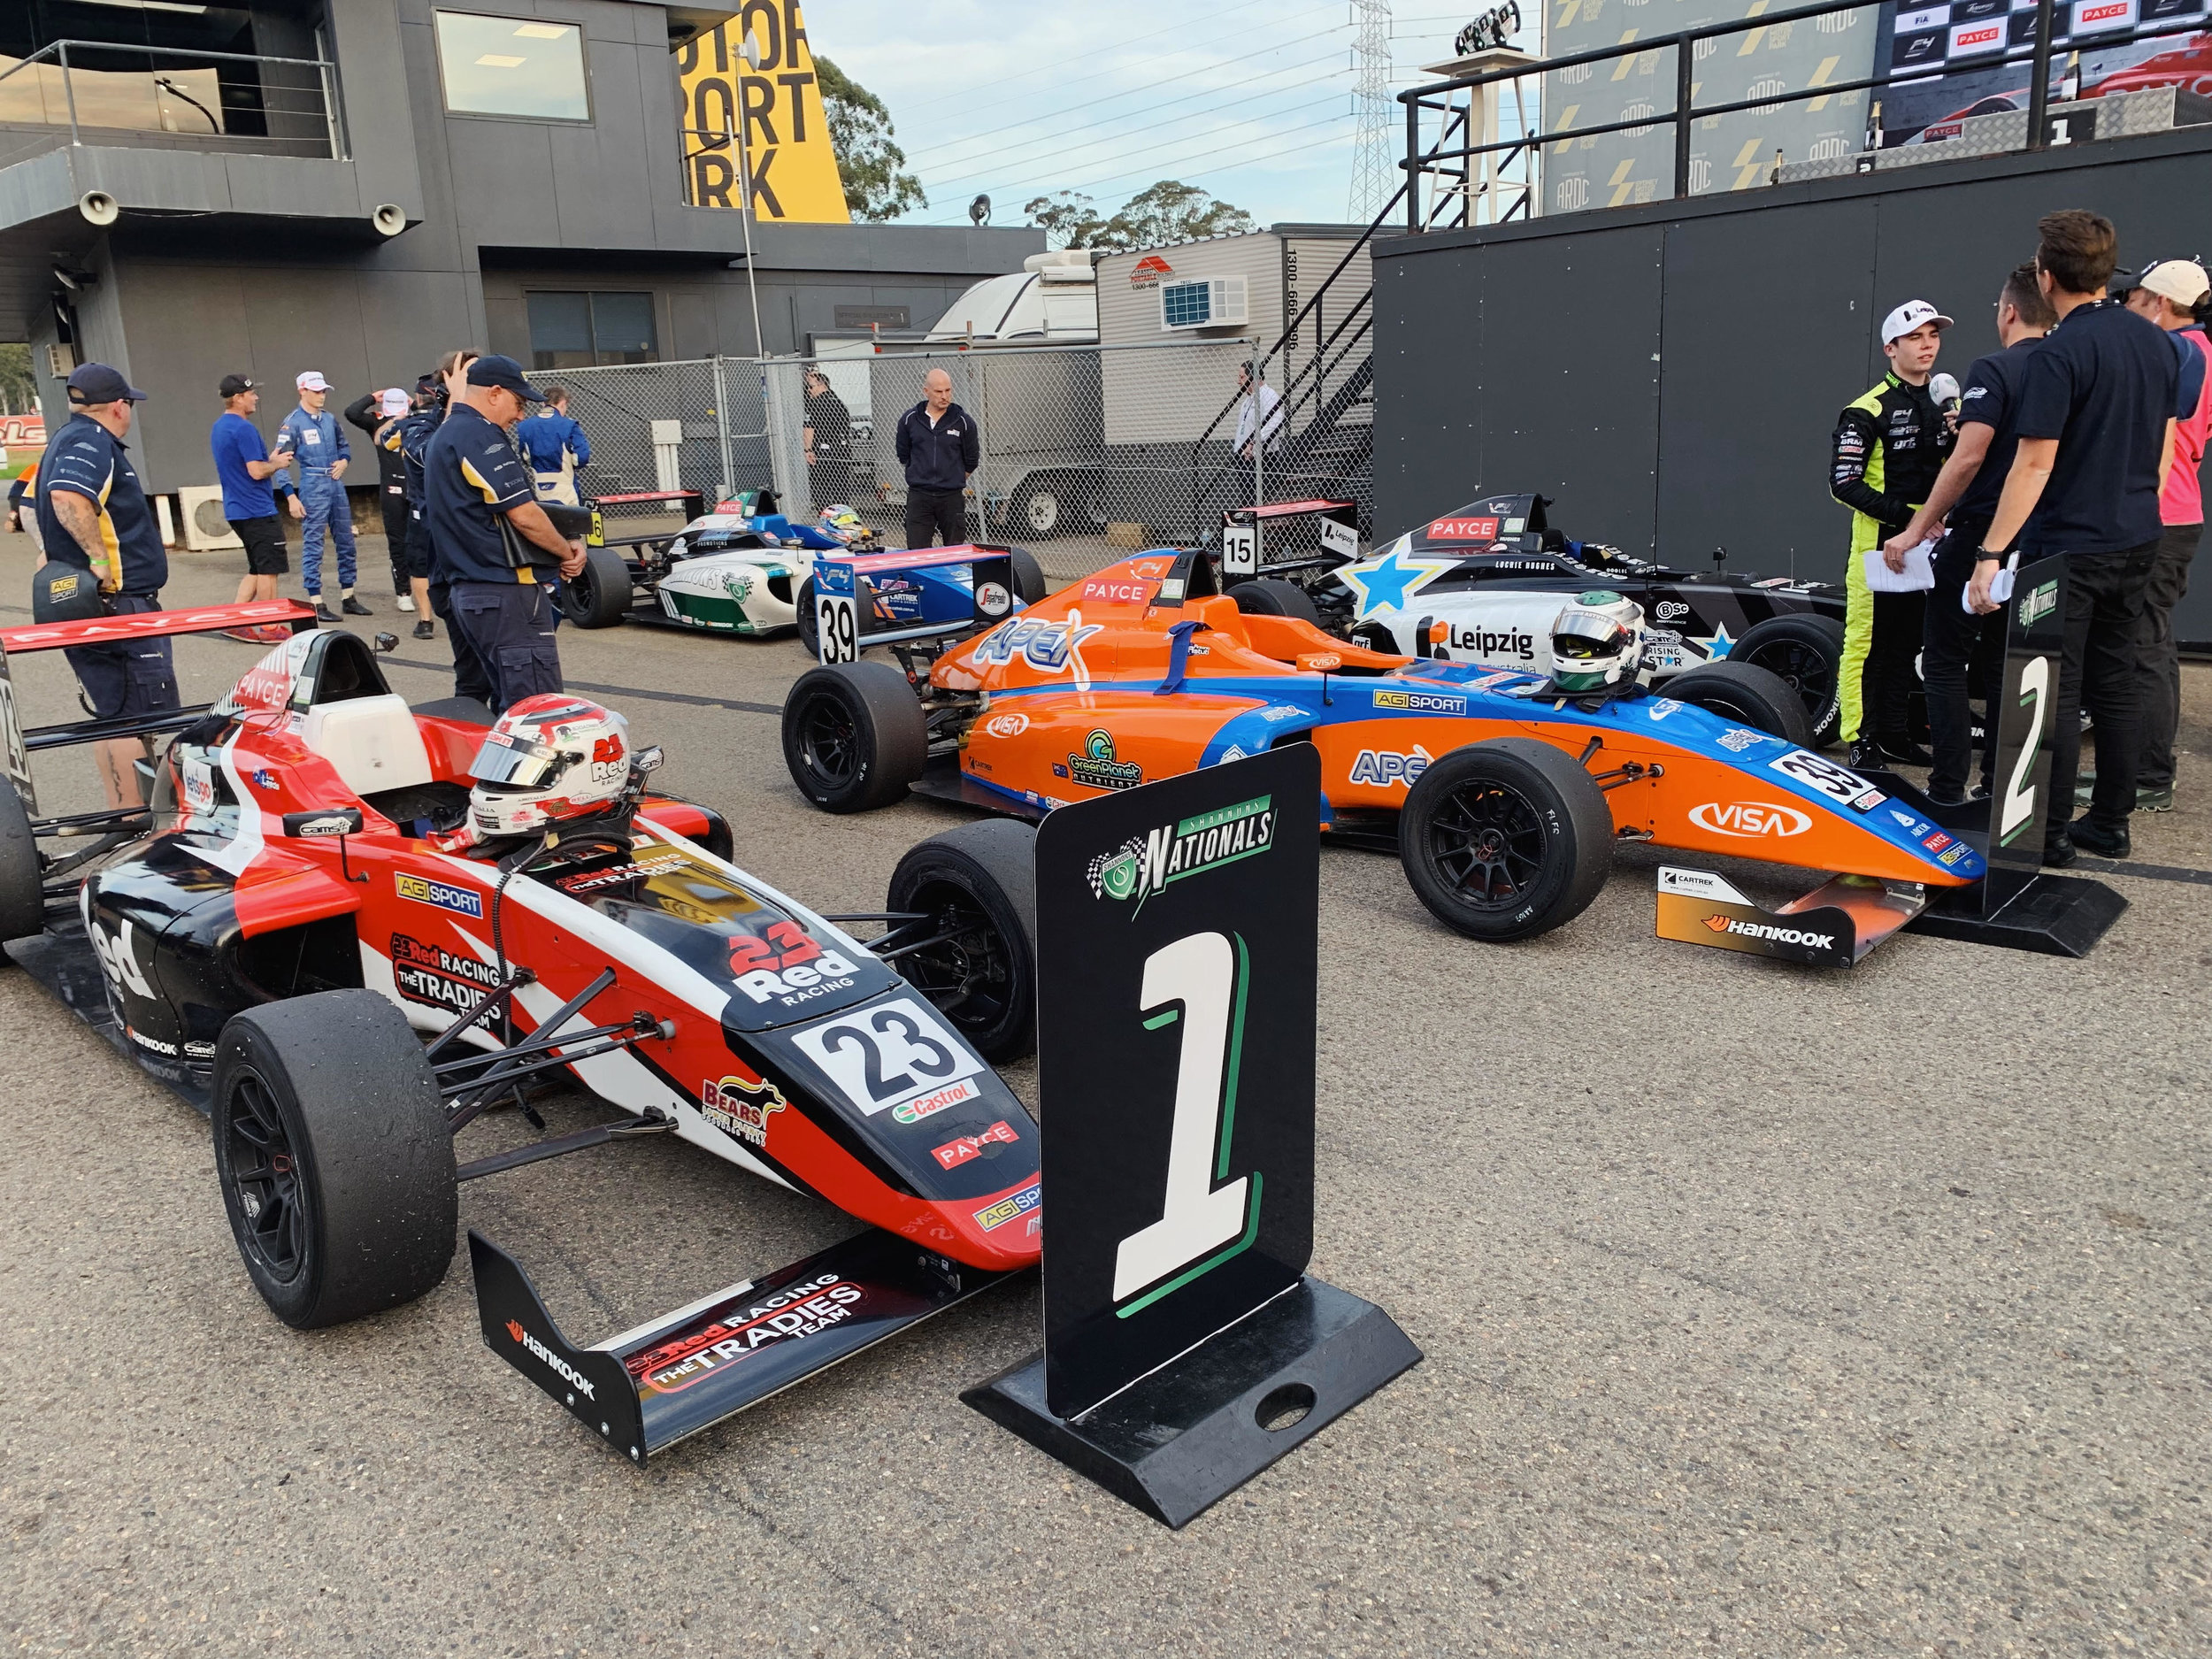 Parc ferme with the top 3 after the race.